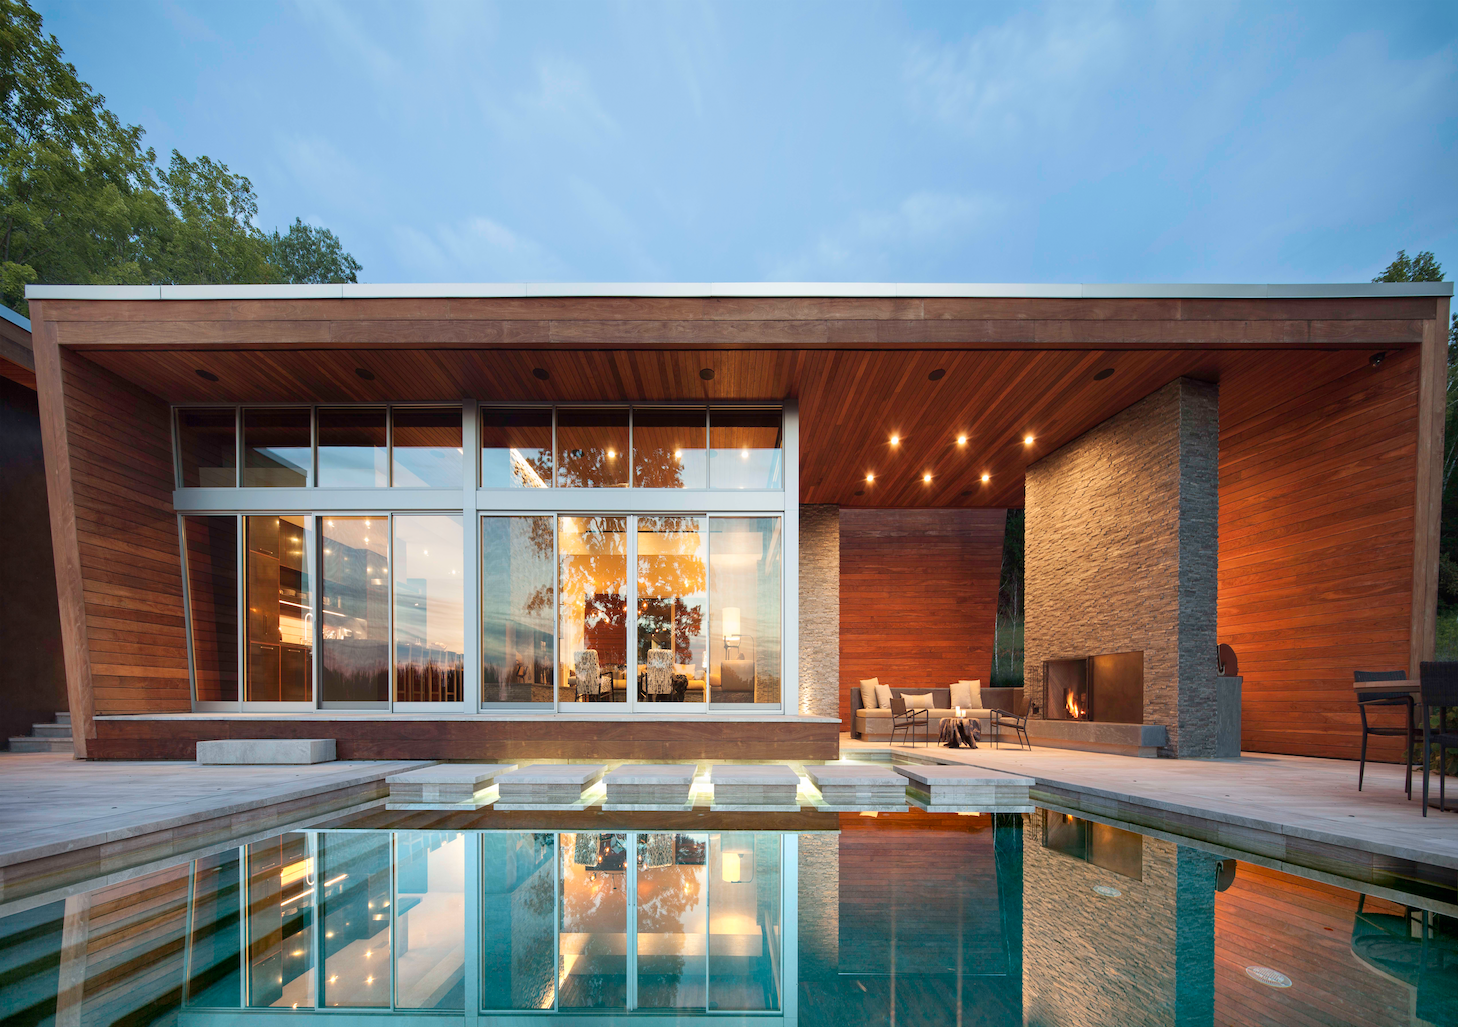 Outdoor, Infinity Pools, Tubs, Shower, Pavers Patio, Porch, Deck, Large Patio, Porch, Deck, and Wood Patio, Porch, Deck  Taghkanic House by Hariri & Hariri Architecture